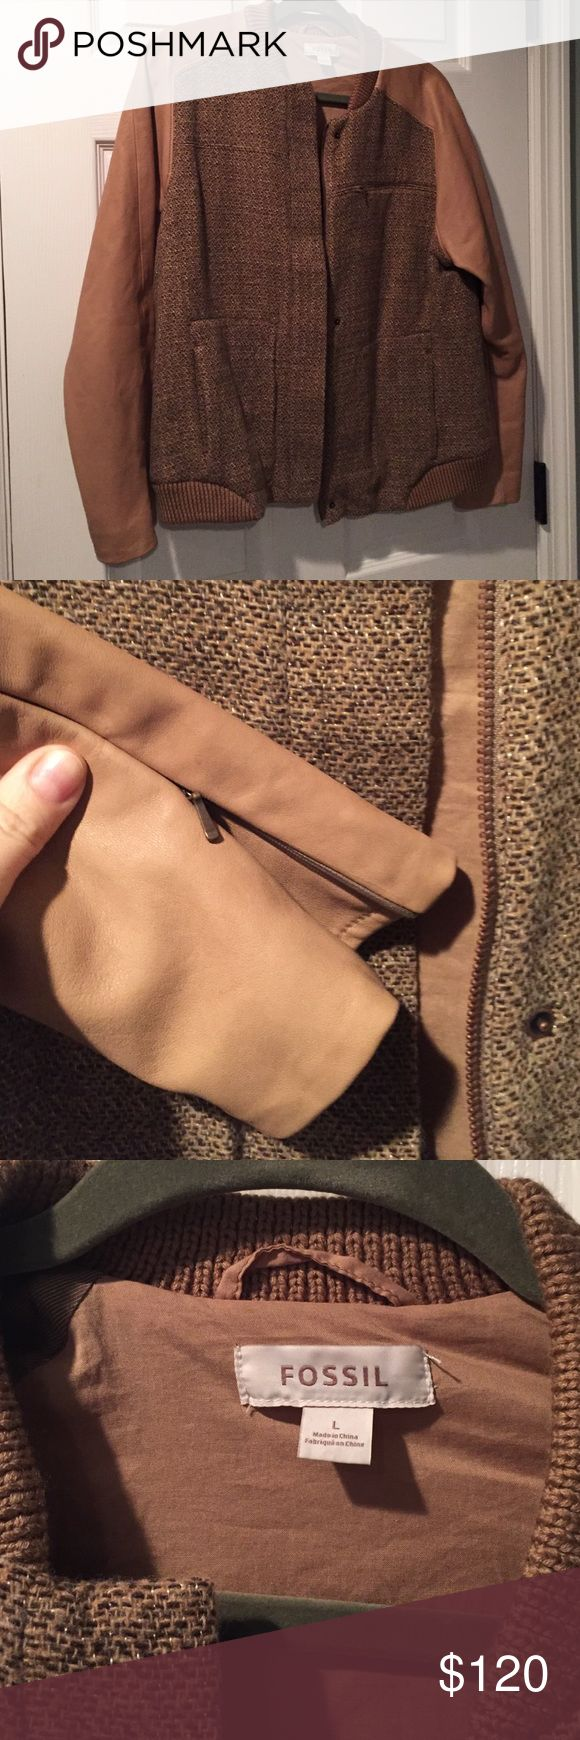 Tweed and Leather Bomber Buttery soft leather bomber jacket Fossil Jackets & Coats